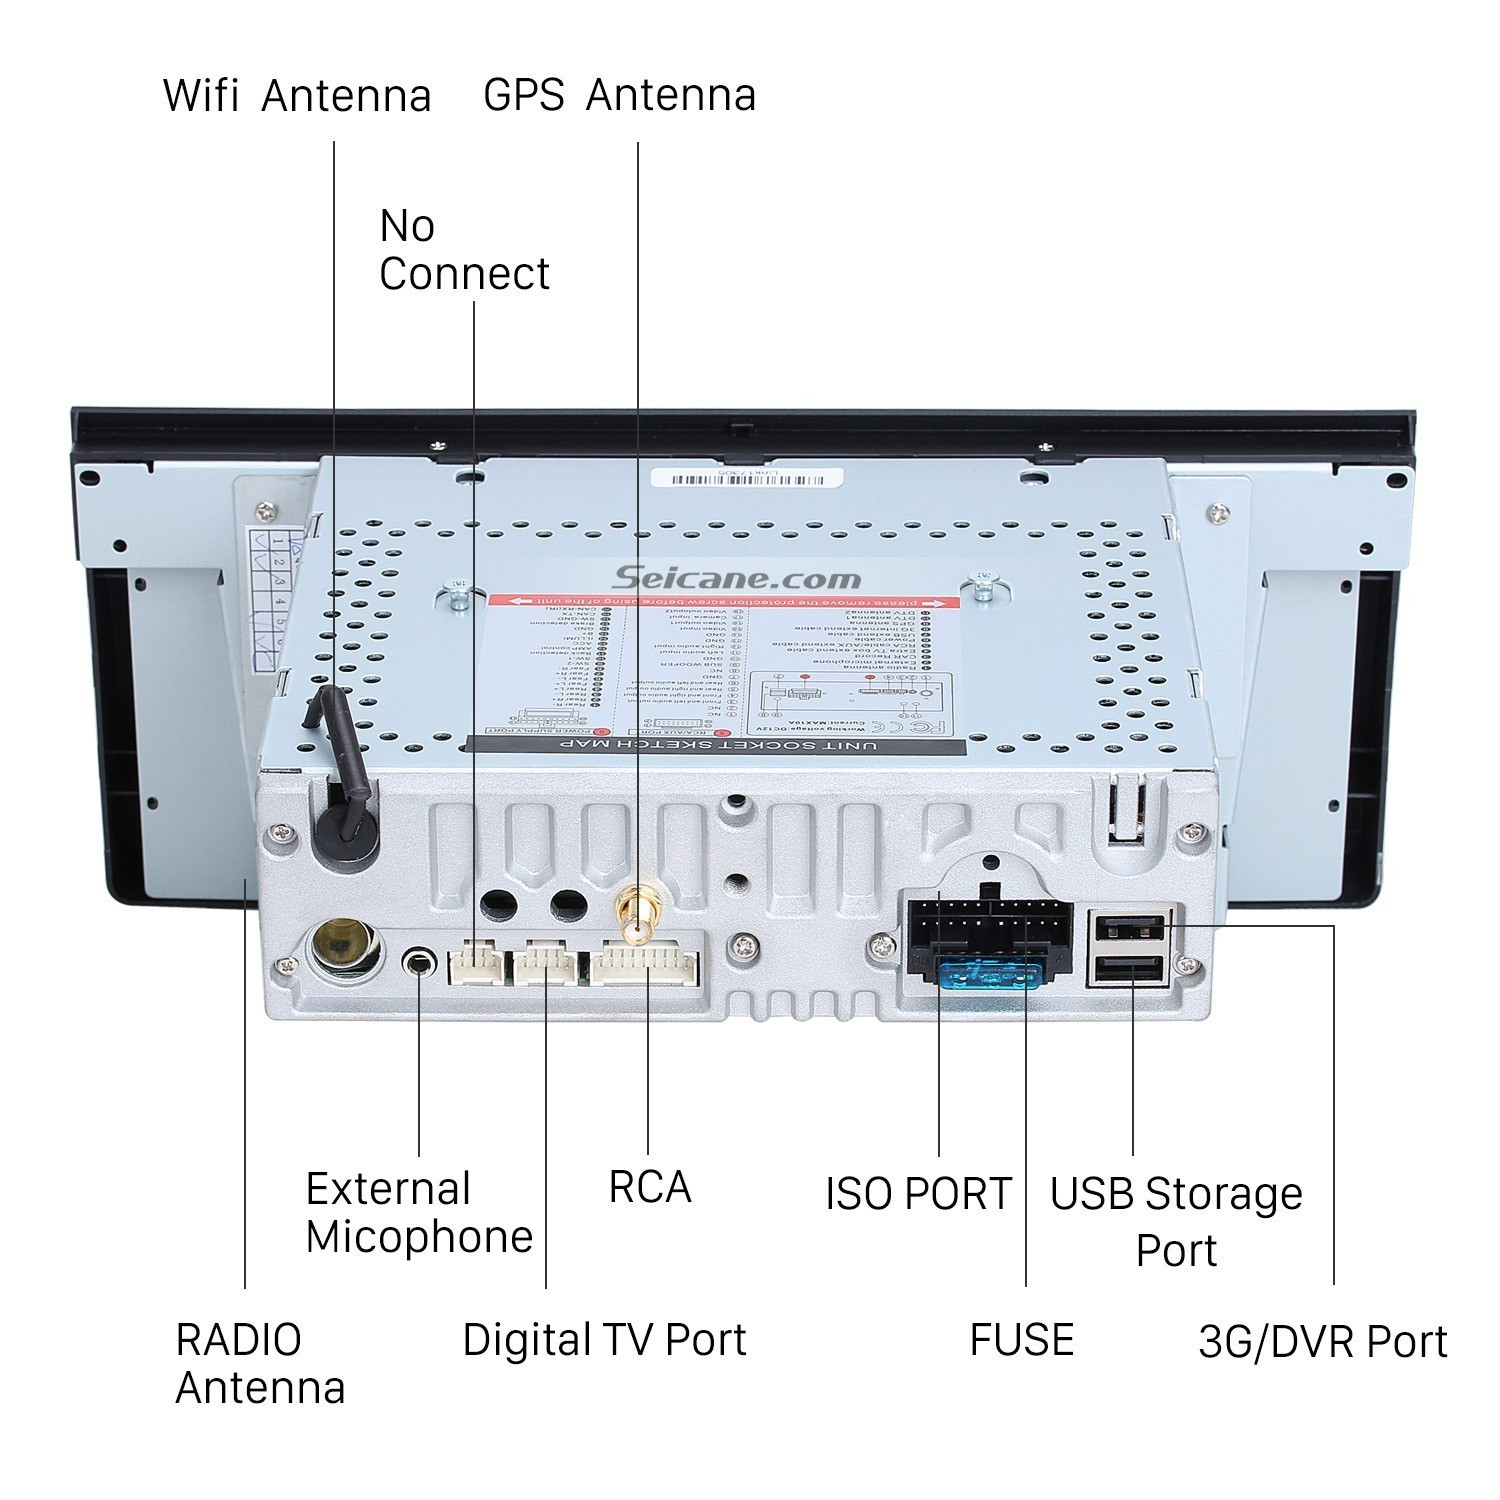 Jvc Car Stereo Wiring Diagram Wrg 4838] Jvc Ks R130 Car Stereo Wiring Diagram Of Jvc Car Stereo Wiring Diagram Hitachi Radio Wiring Harness Wiring Diagram Datasource